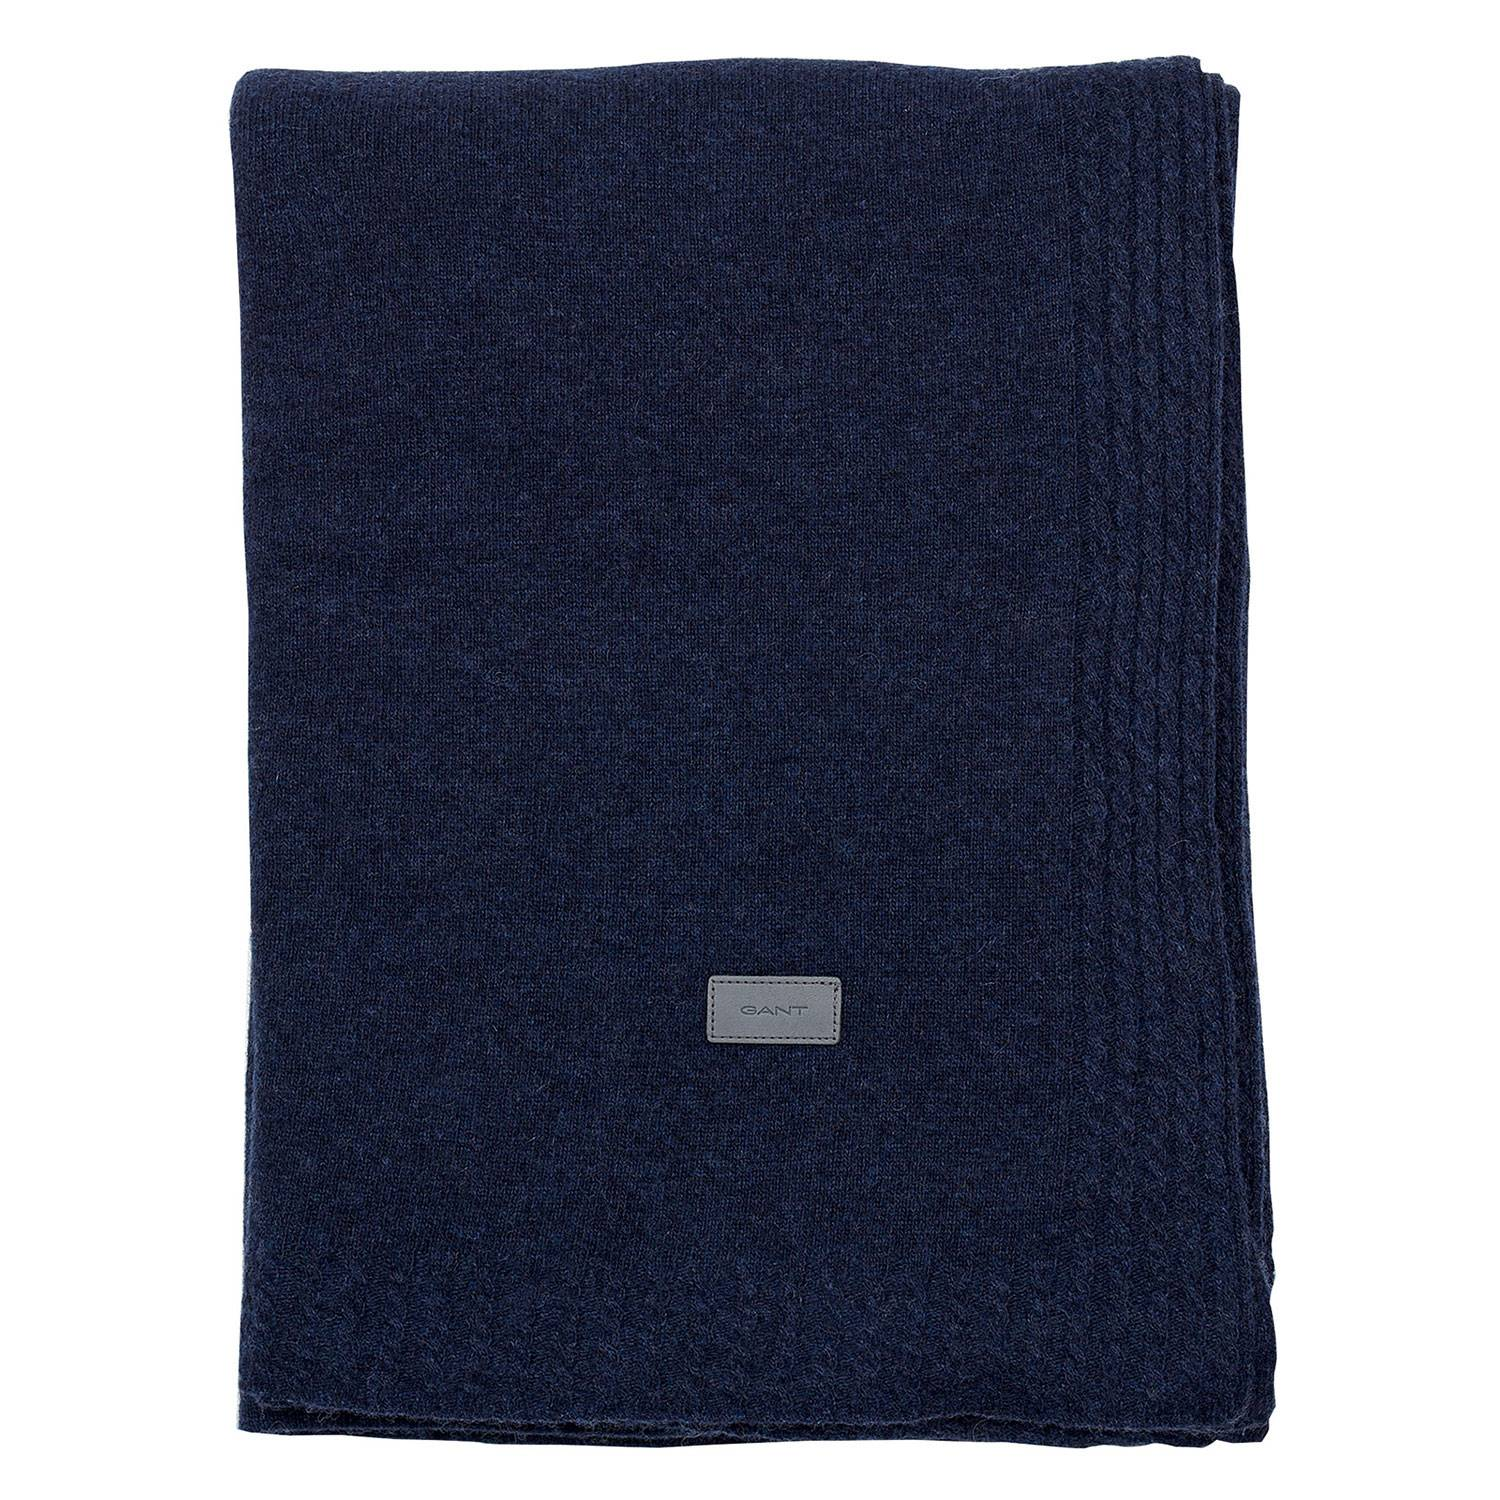 Gant Home Light Cable Knit Huopa 130x180cm, Yankee Blue